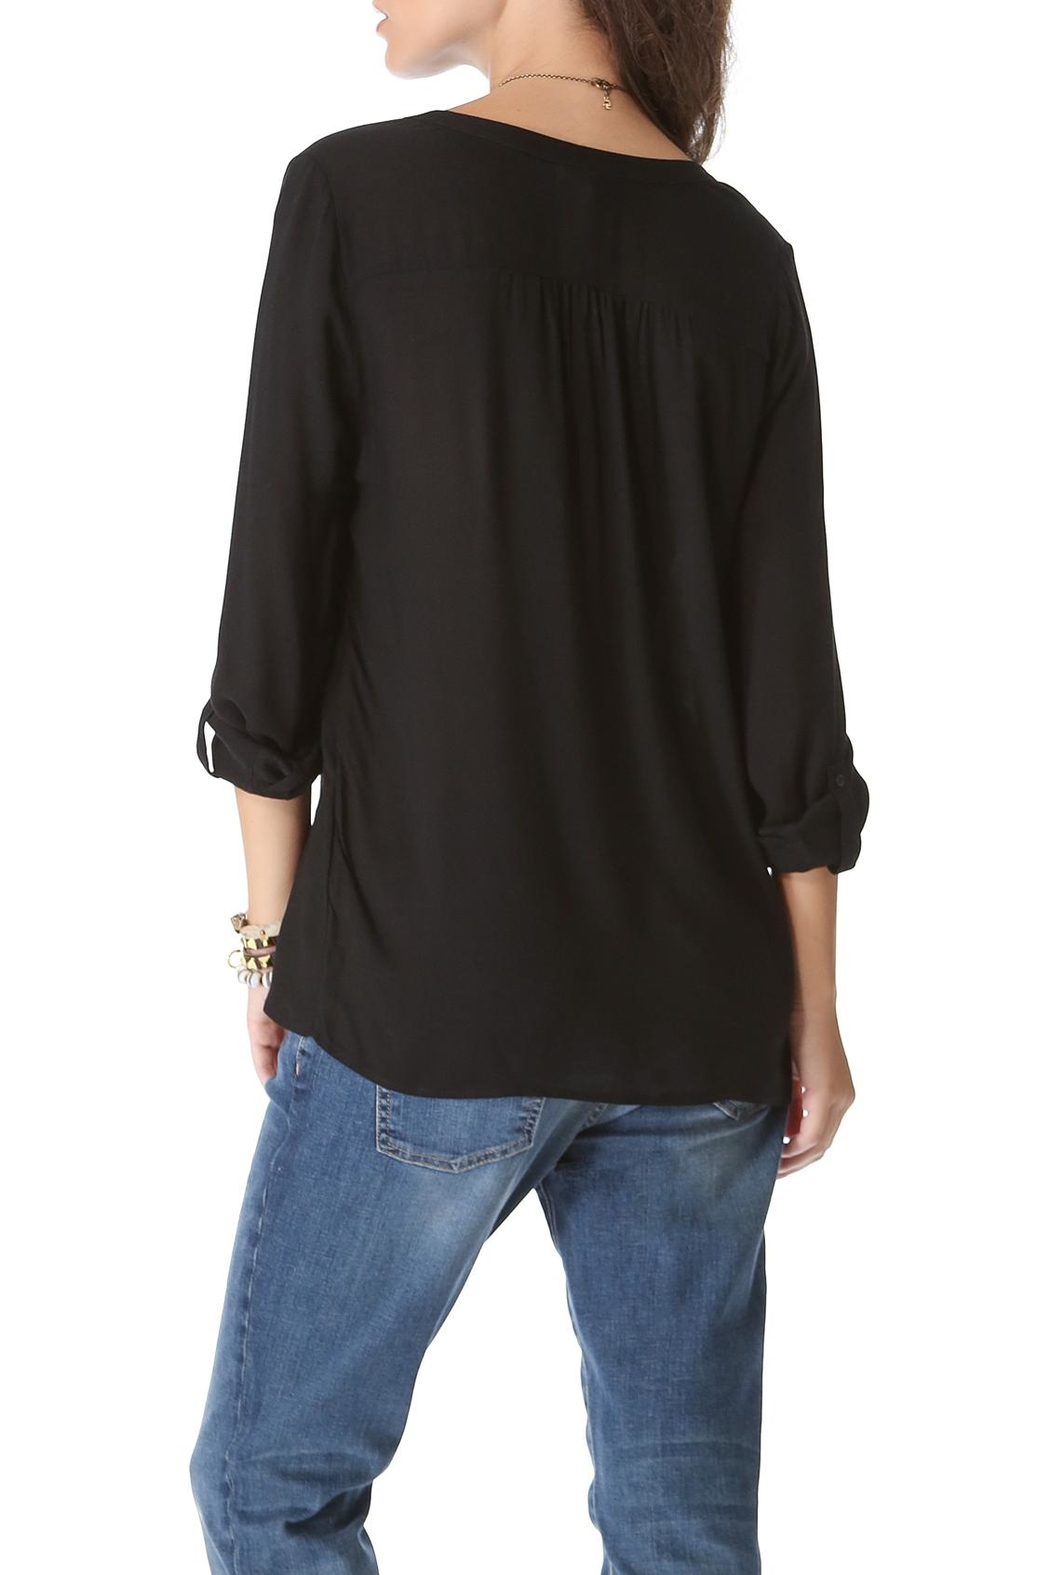 Joie Tamarine Blouse - Side Cropped Image